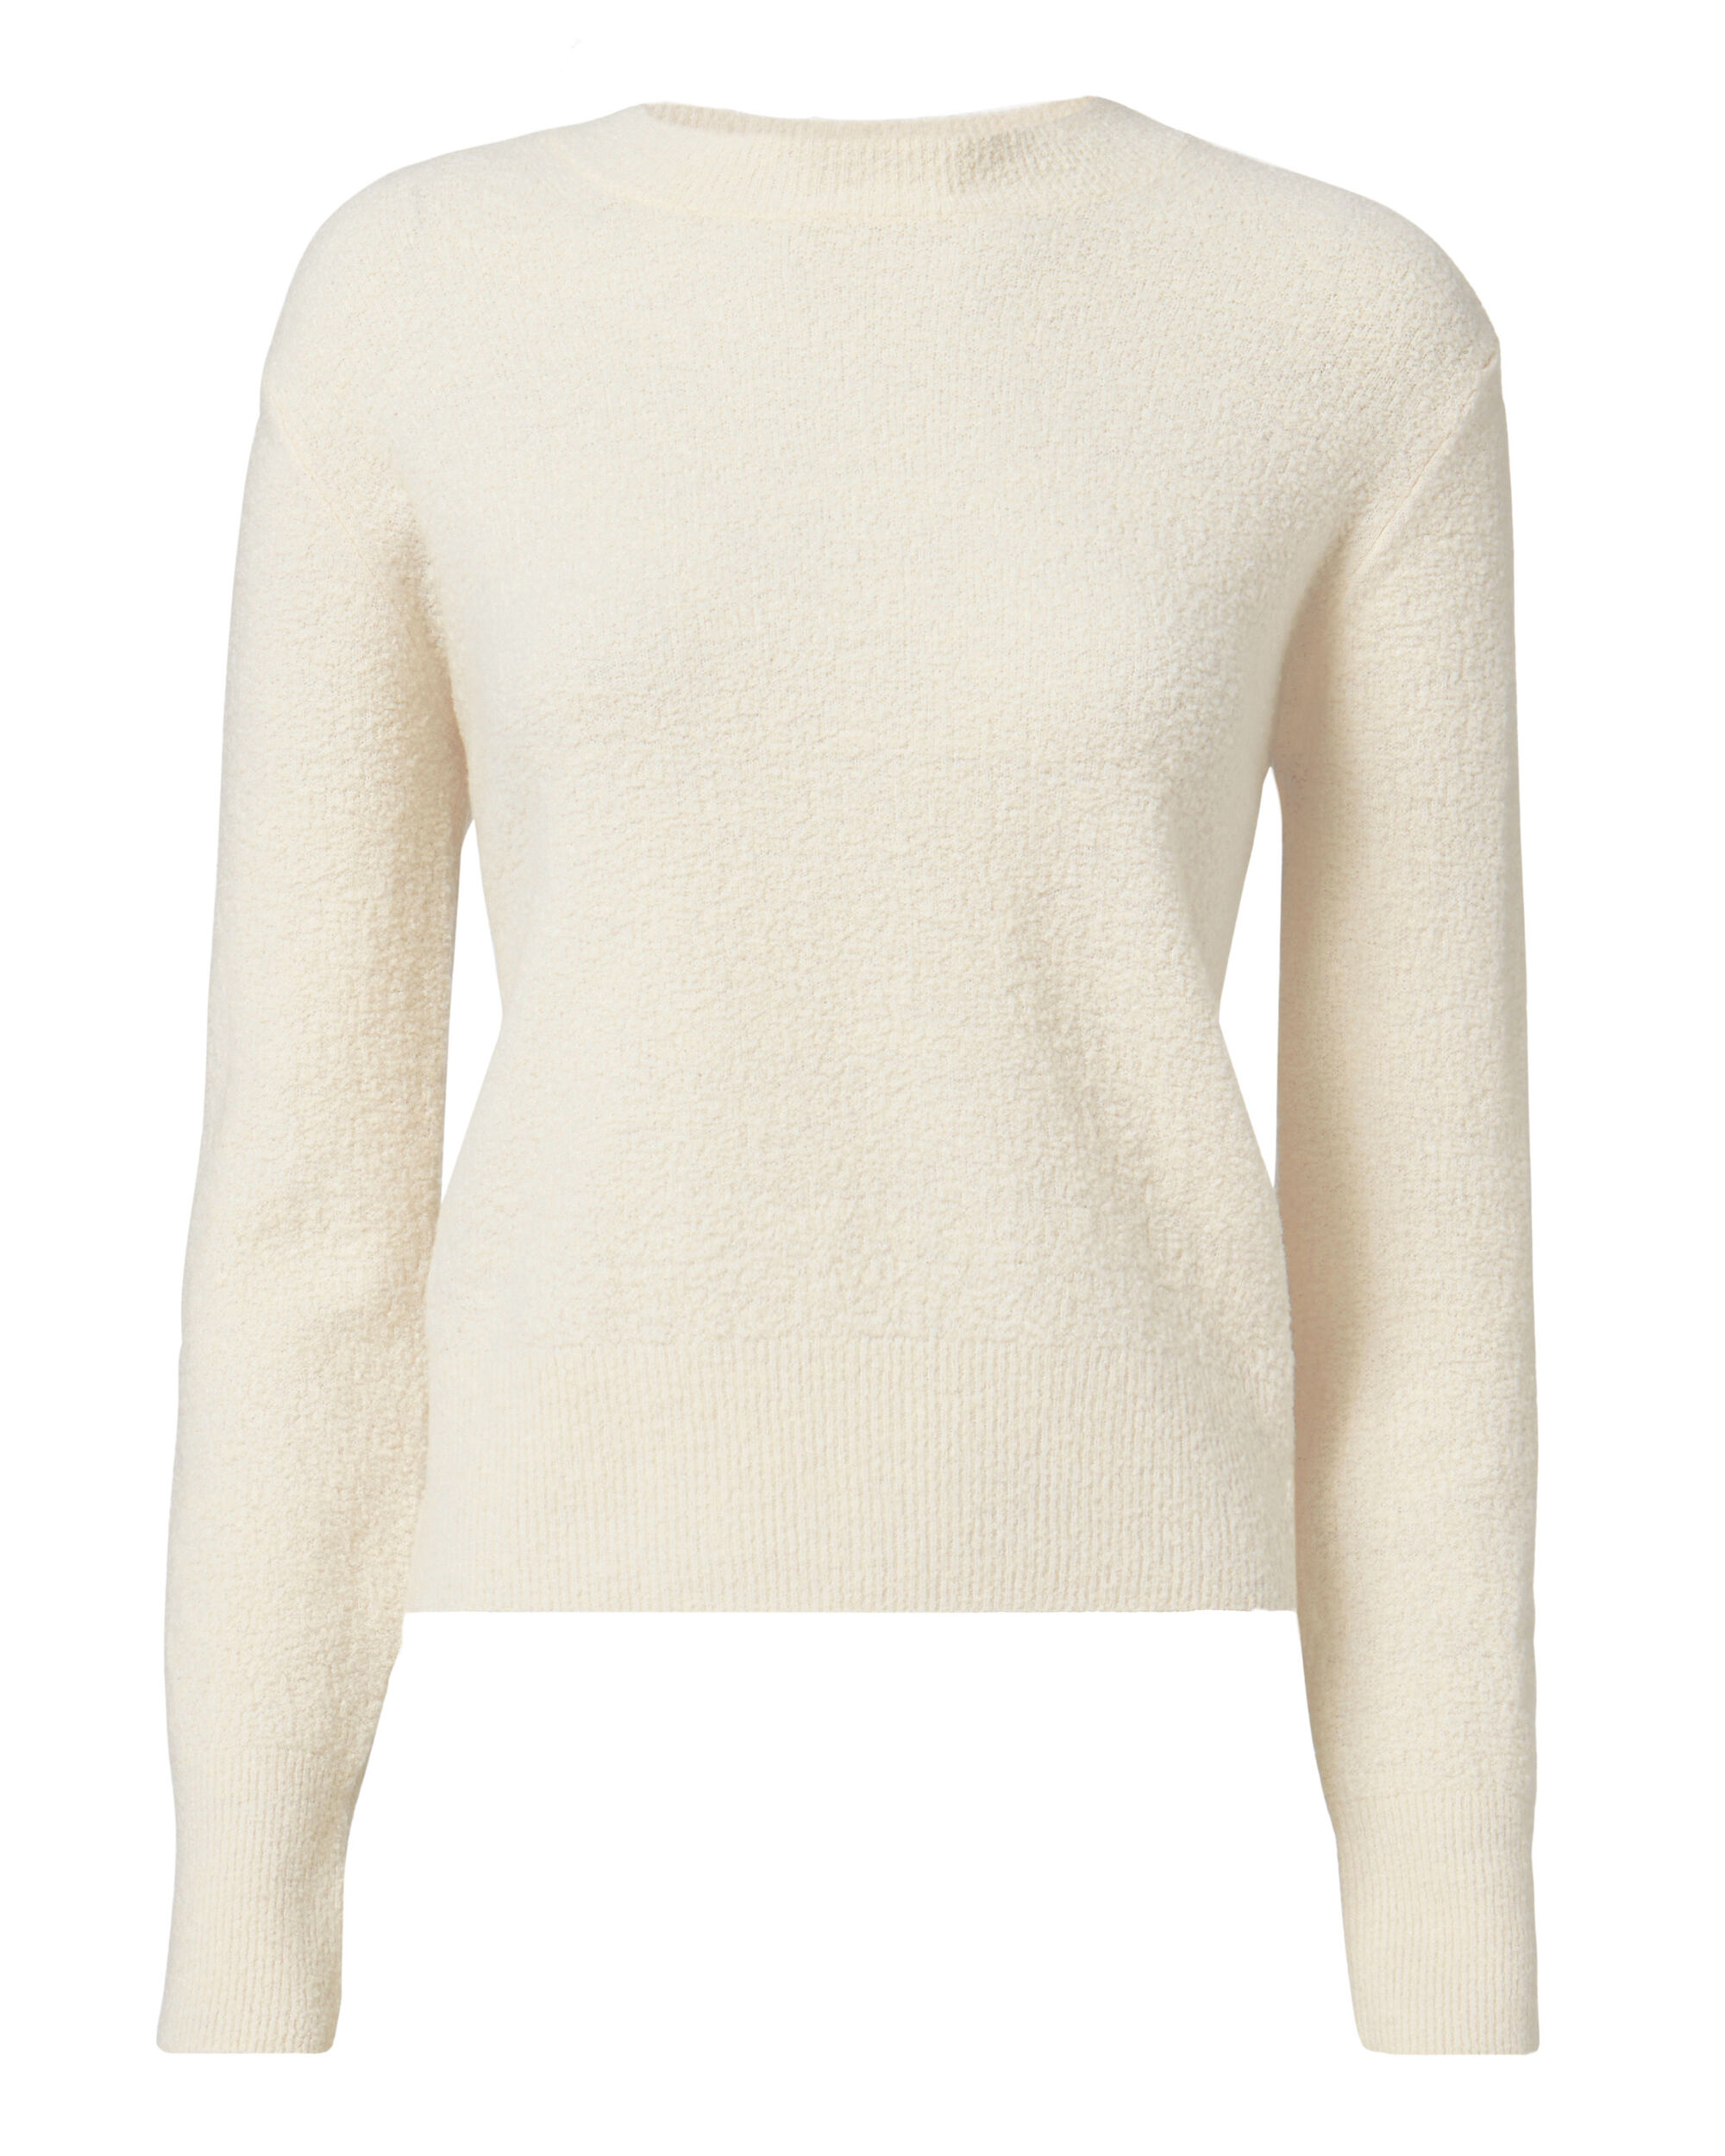 Bouclé Wool Pullover, WHITE, hi-res